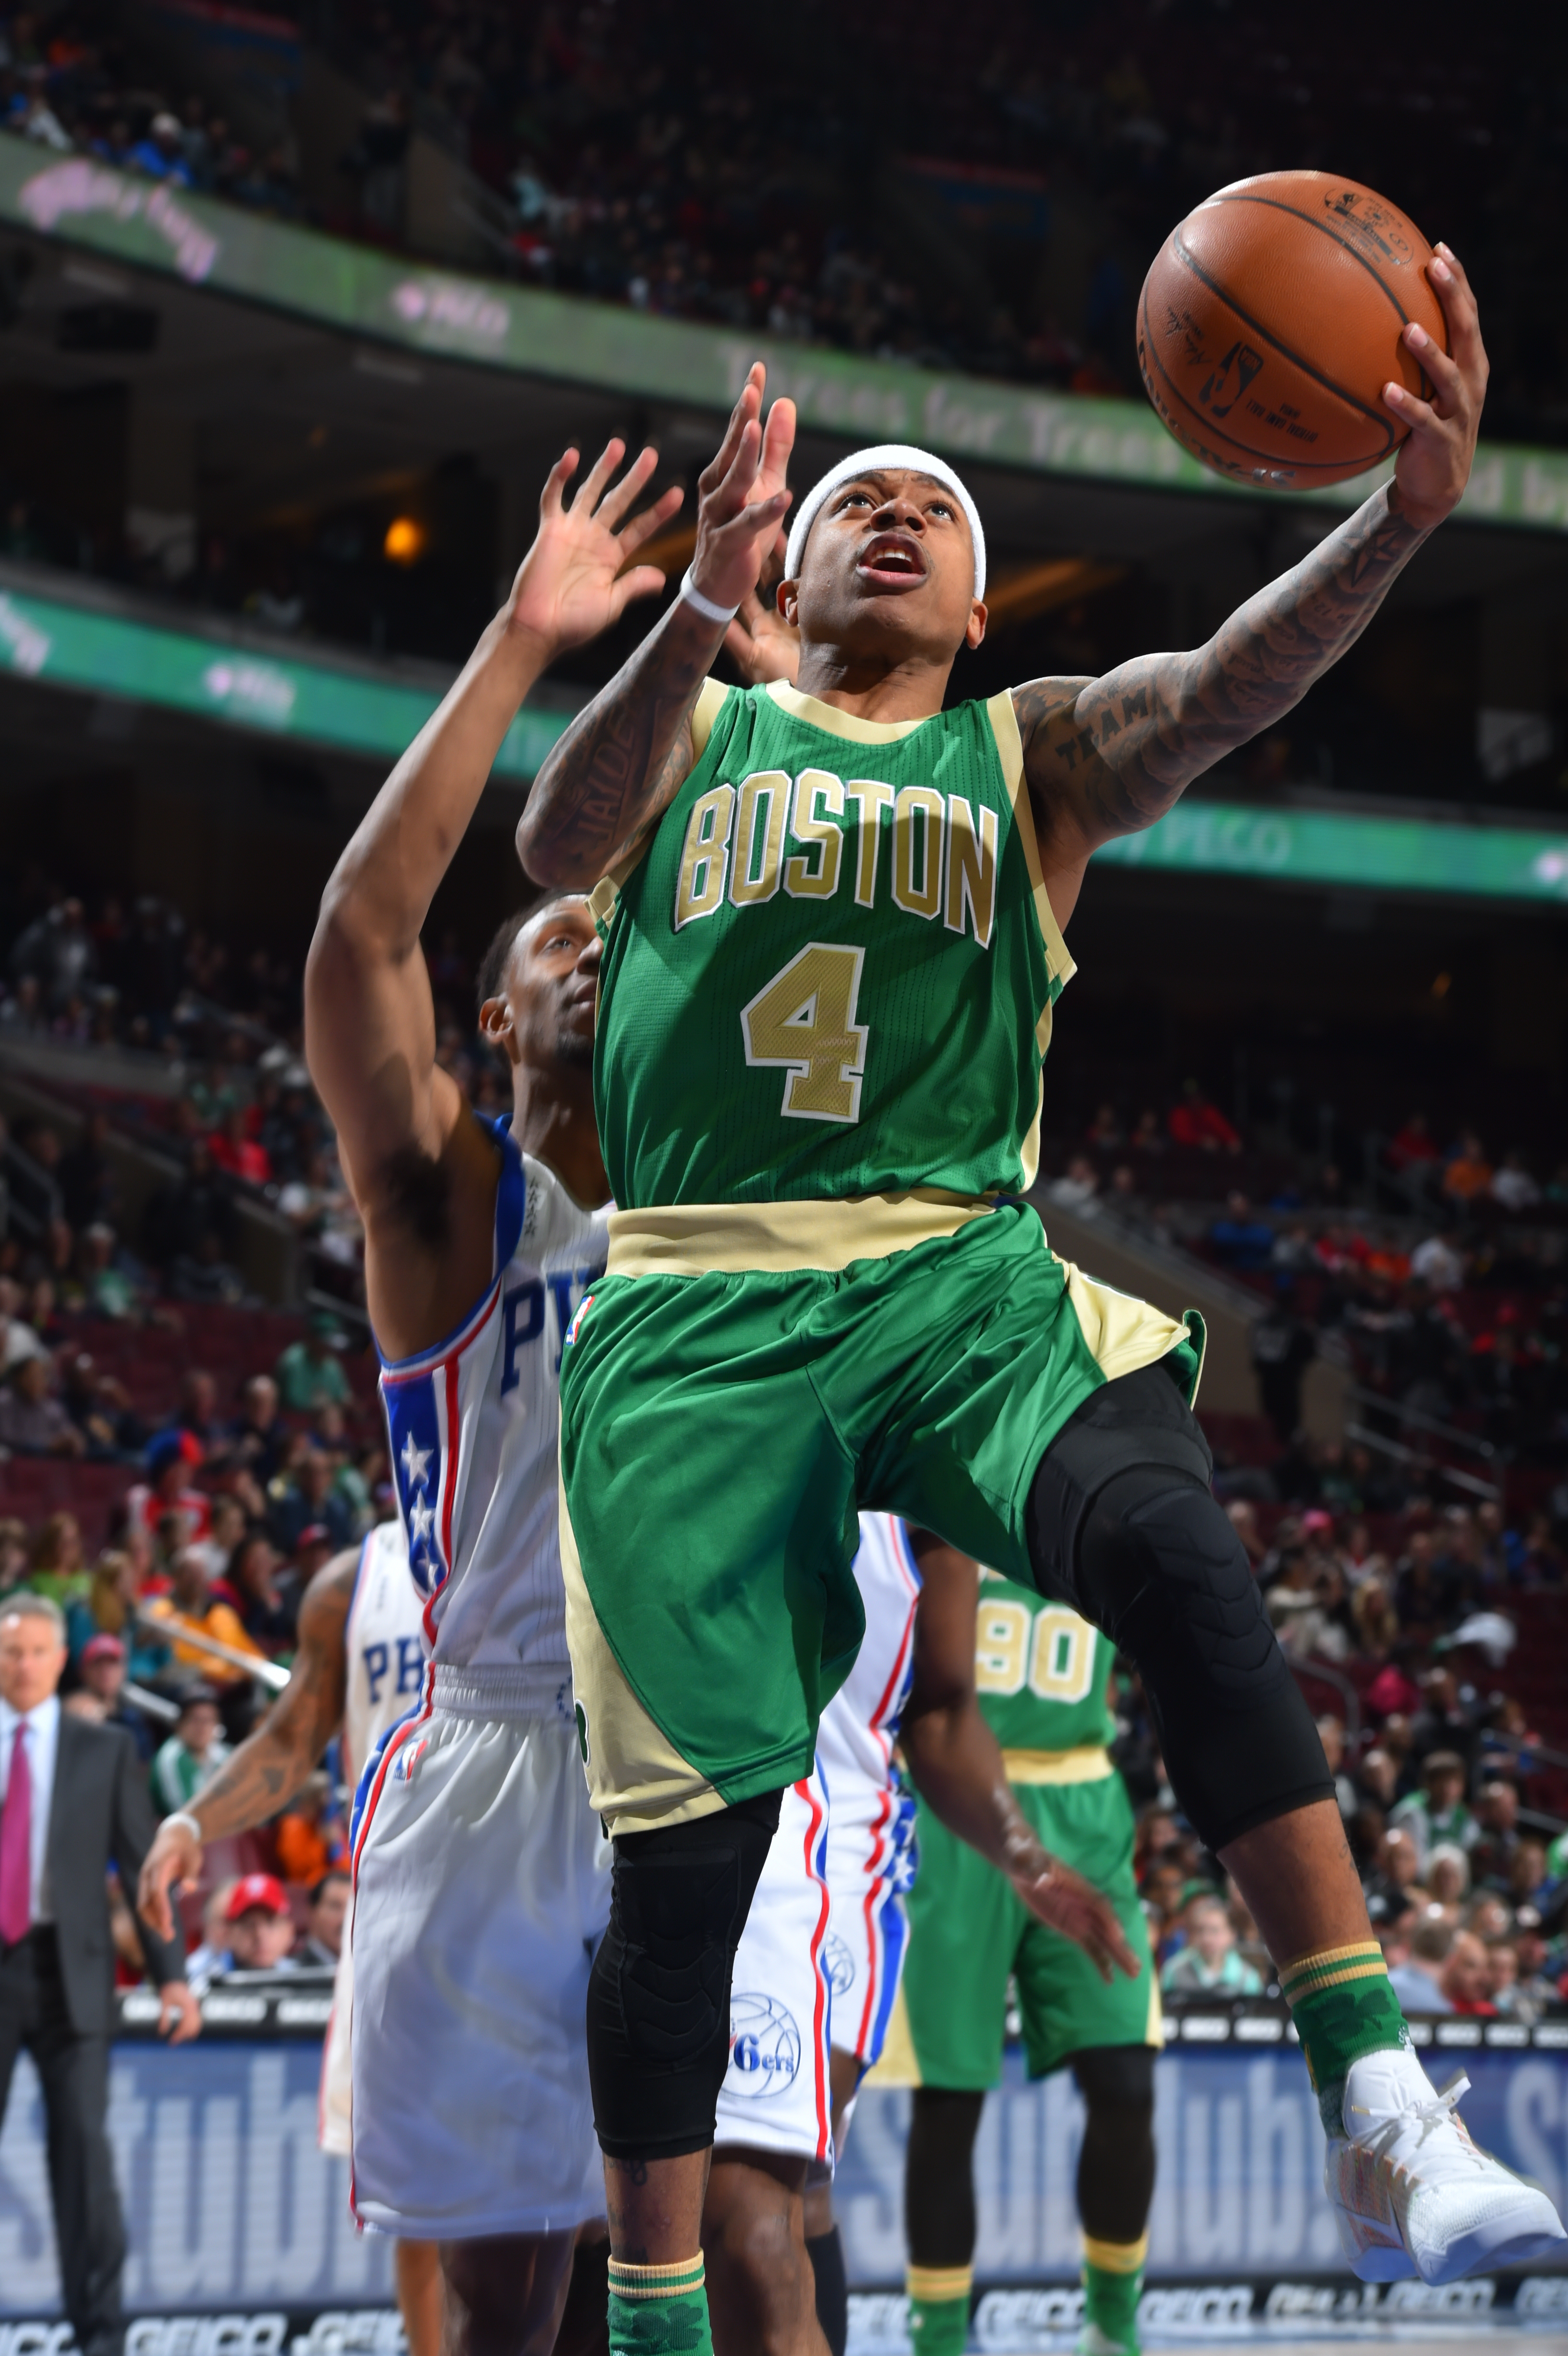 PHILADELPHIA,PA - MARCH 20:  Isaiah Thomas #4 of the Boston Celtics goes up for the layup against the Philadelphia 76ers at Wells Fargo Center on March 20, 2016 in Philadelphia, Pennsylvania (Photo by Jesse D. Garrabrant/NBAE via Getty Images)